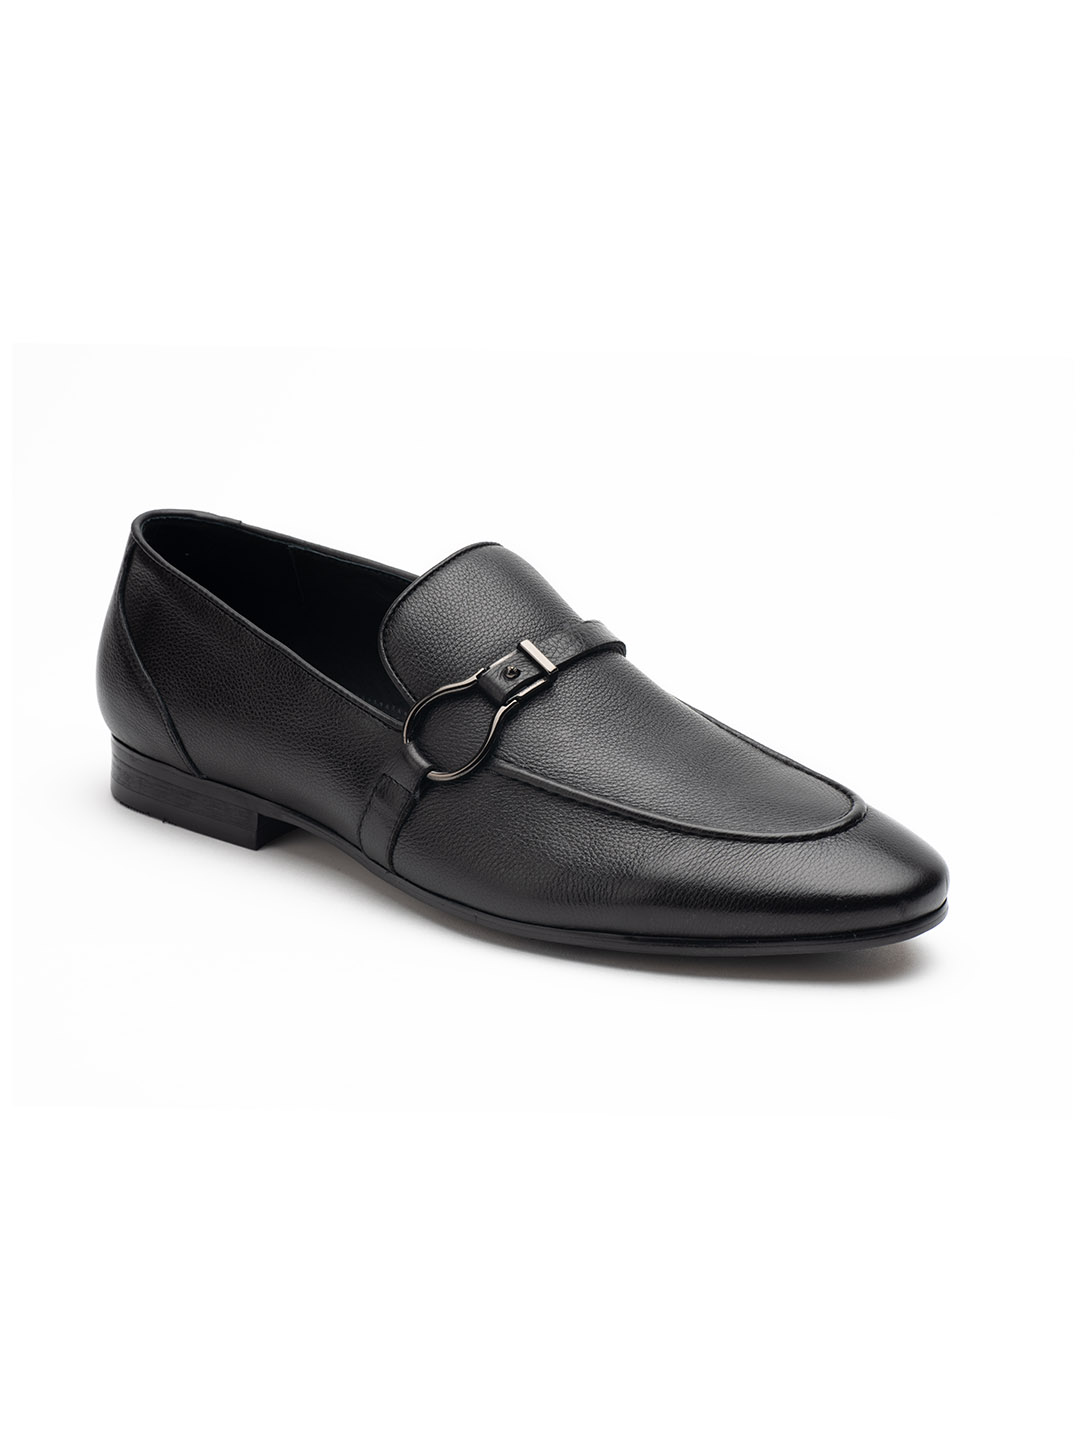 Heel _ Buckle London-HBDARM084-Carousal Black Loafers-Black-2